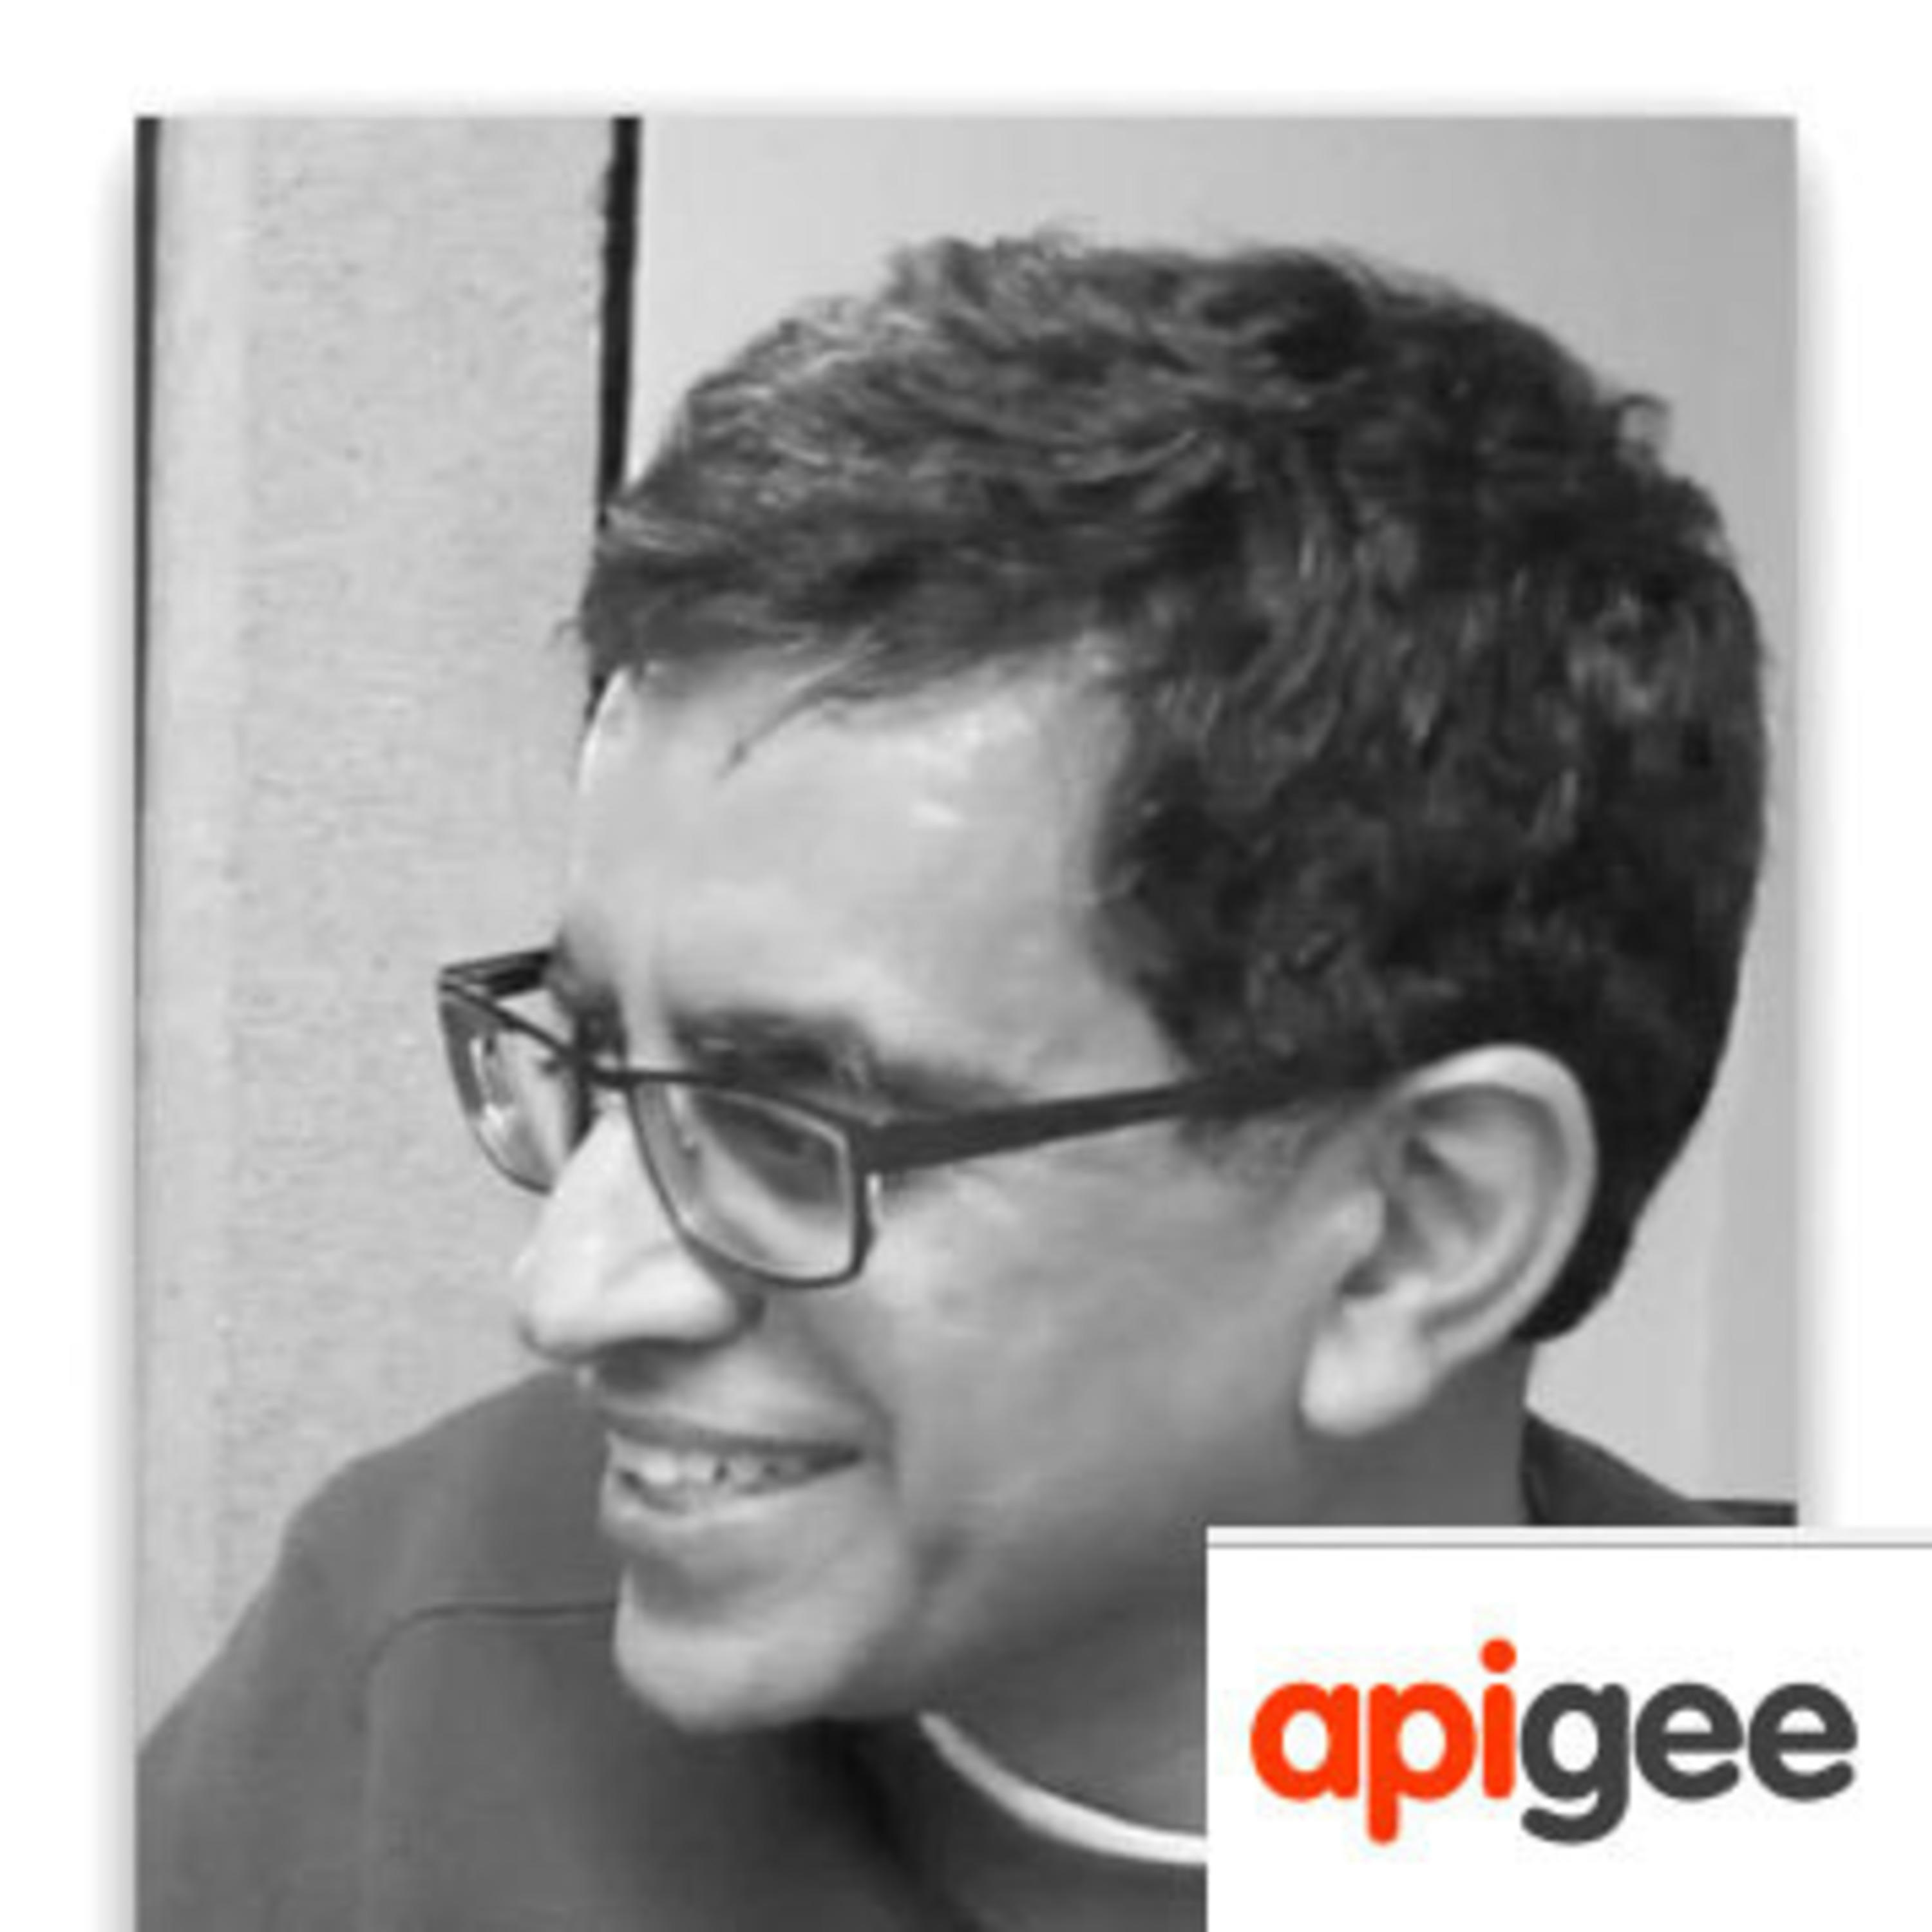 From Startup CTO to Acquired by Google — Anant Jhingran, CTO @Apigee